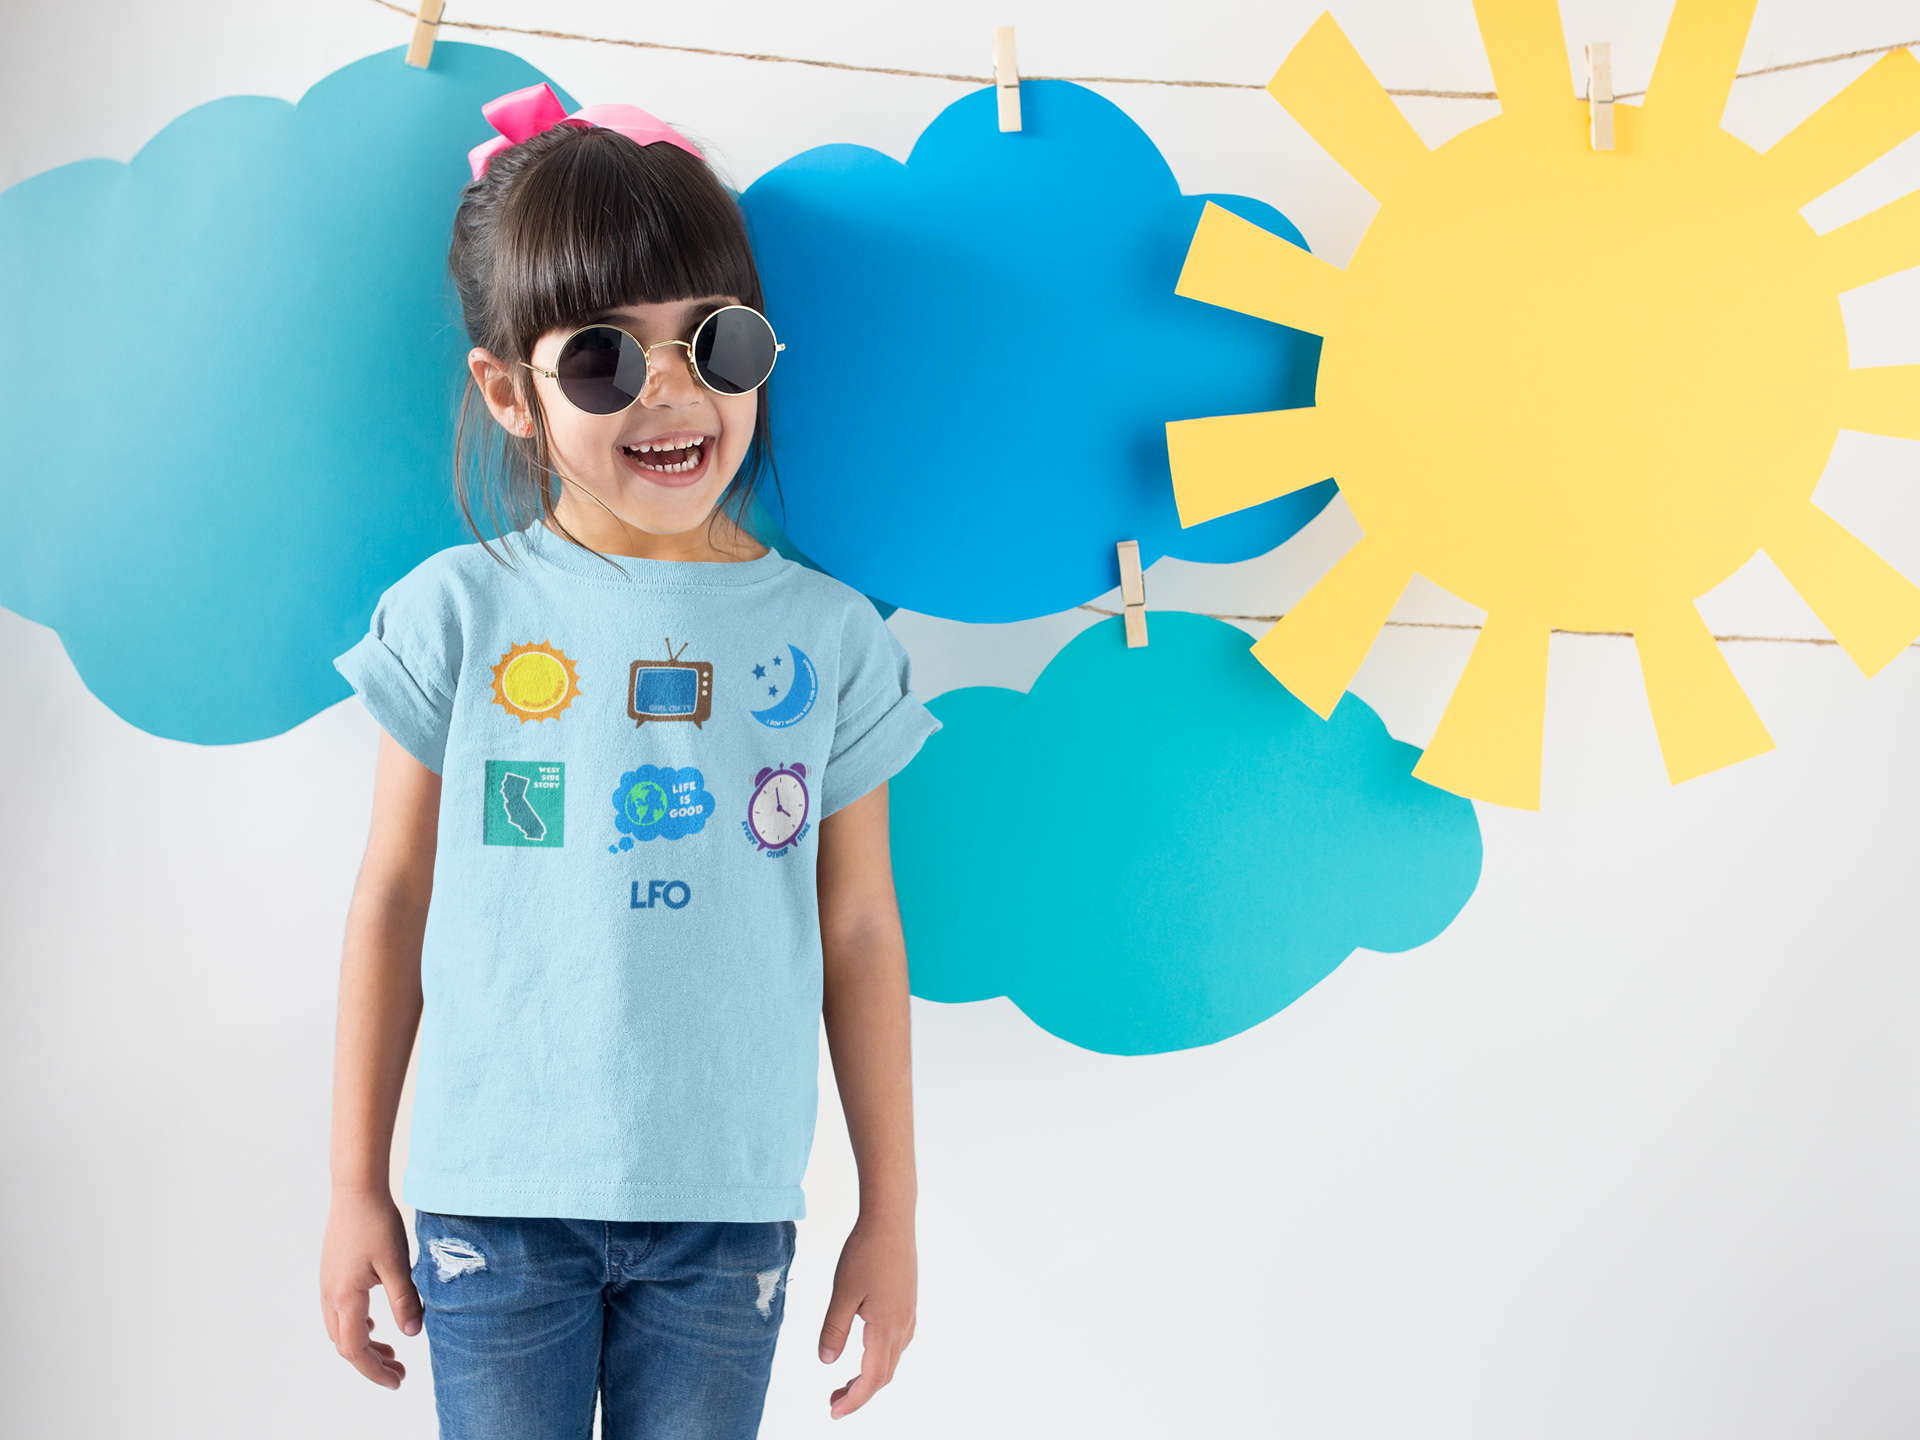 smiling-girl-wearing-a-round-neck-tshirt-template-near-cardboard-sun-and-clouds-a19480.png